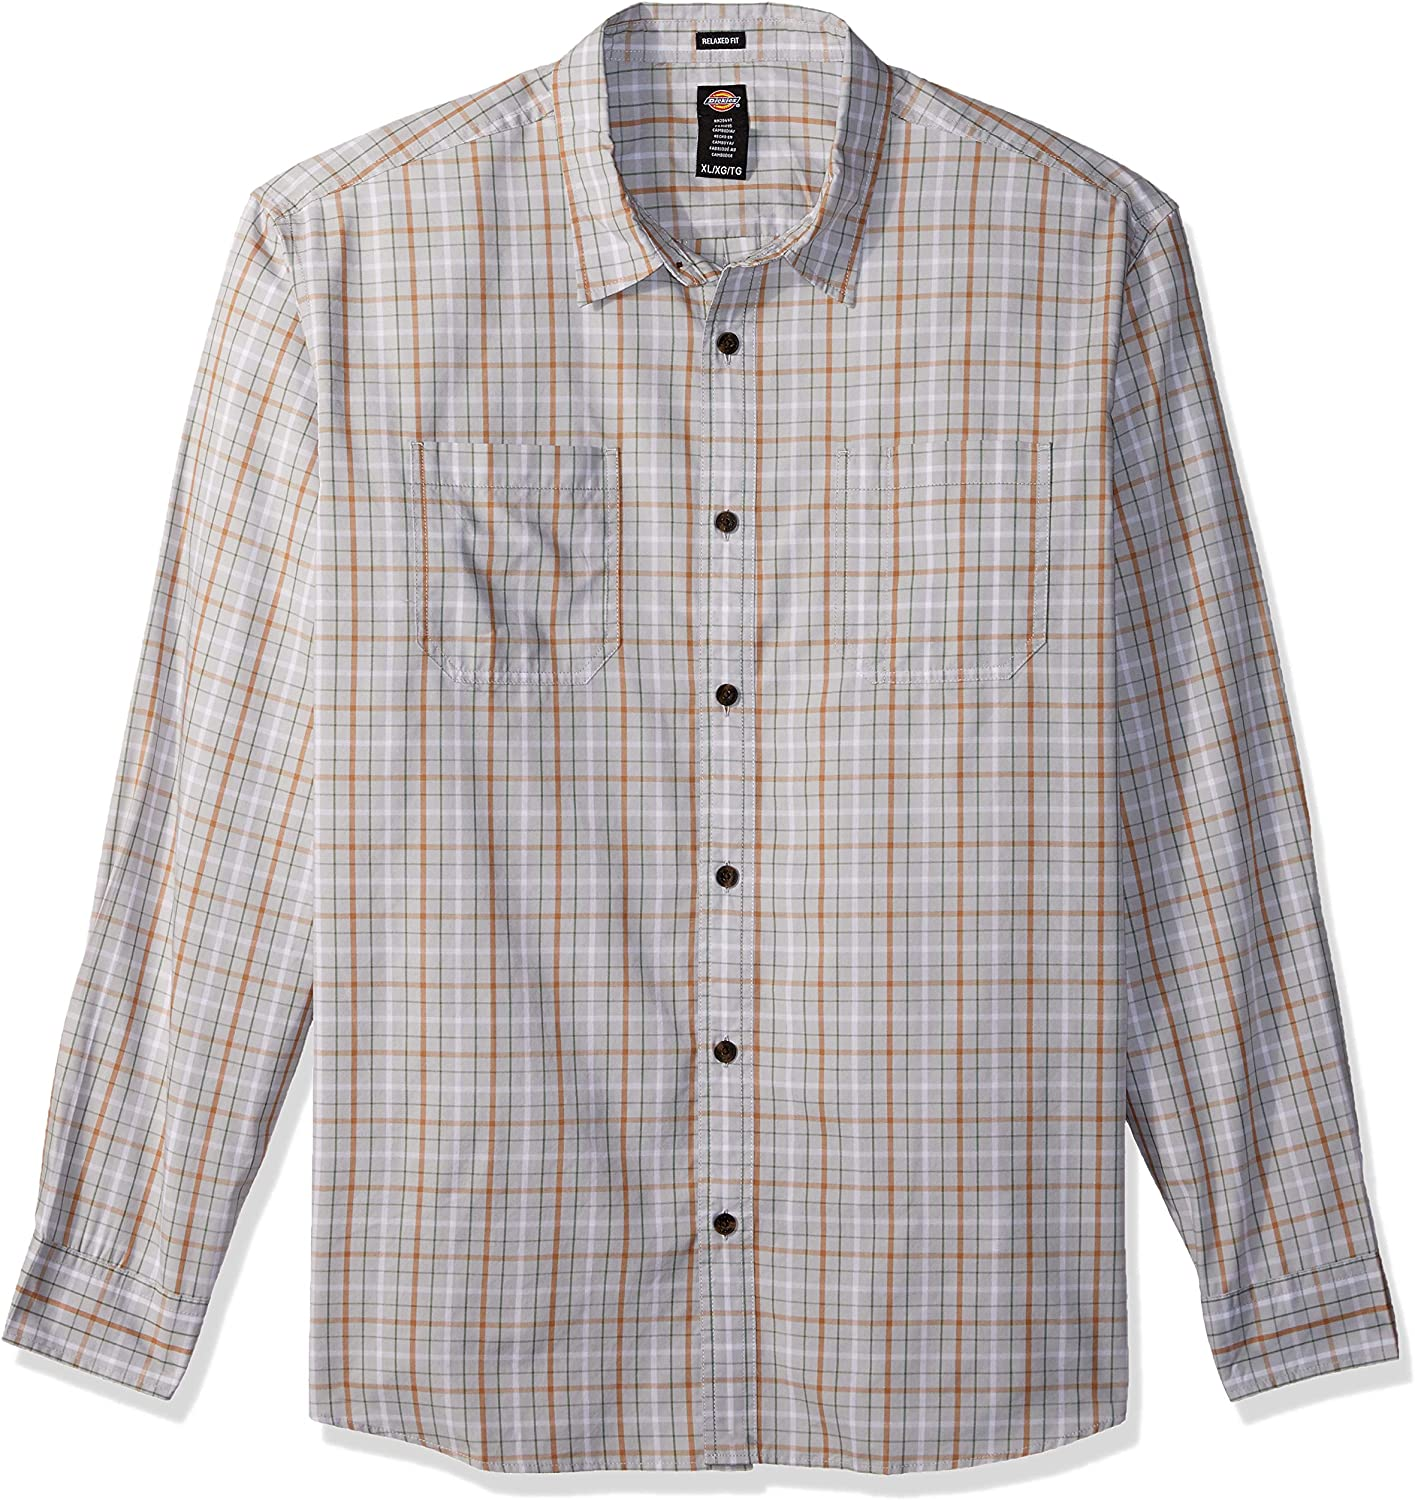 Dickies Mens Long Sleeve Relaxed Fit Yarn Dye Plaid Shirt